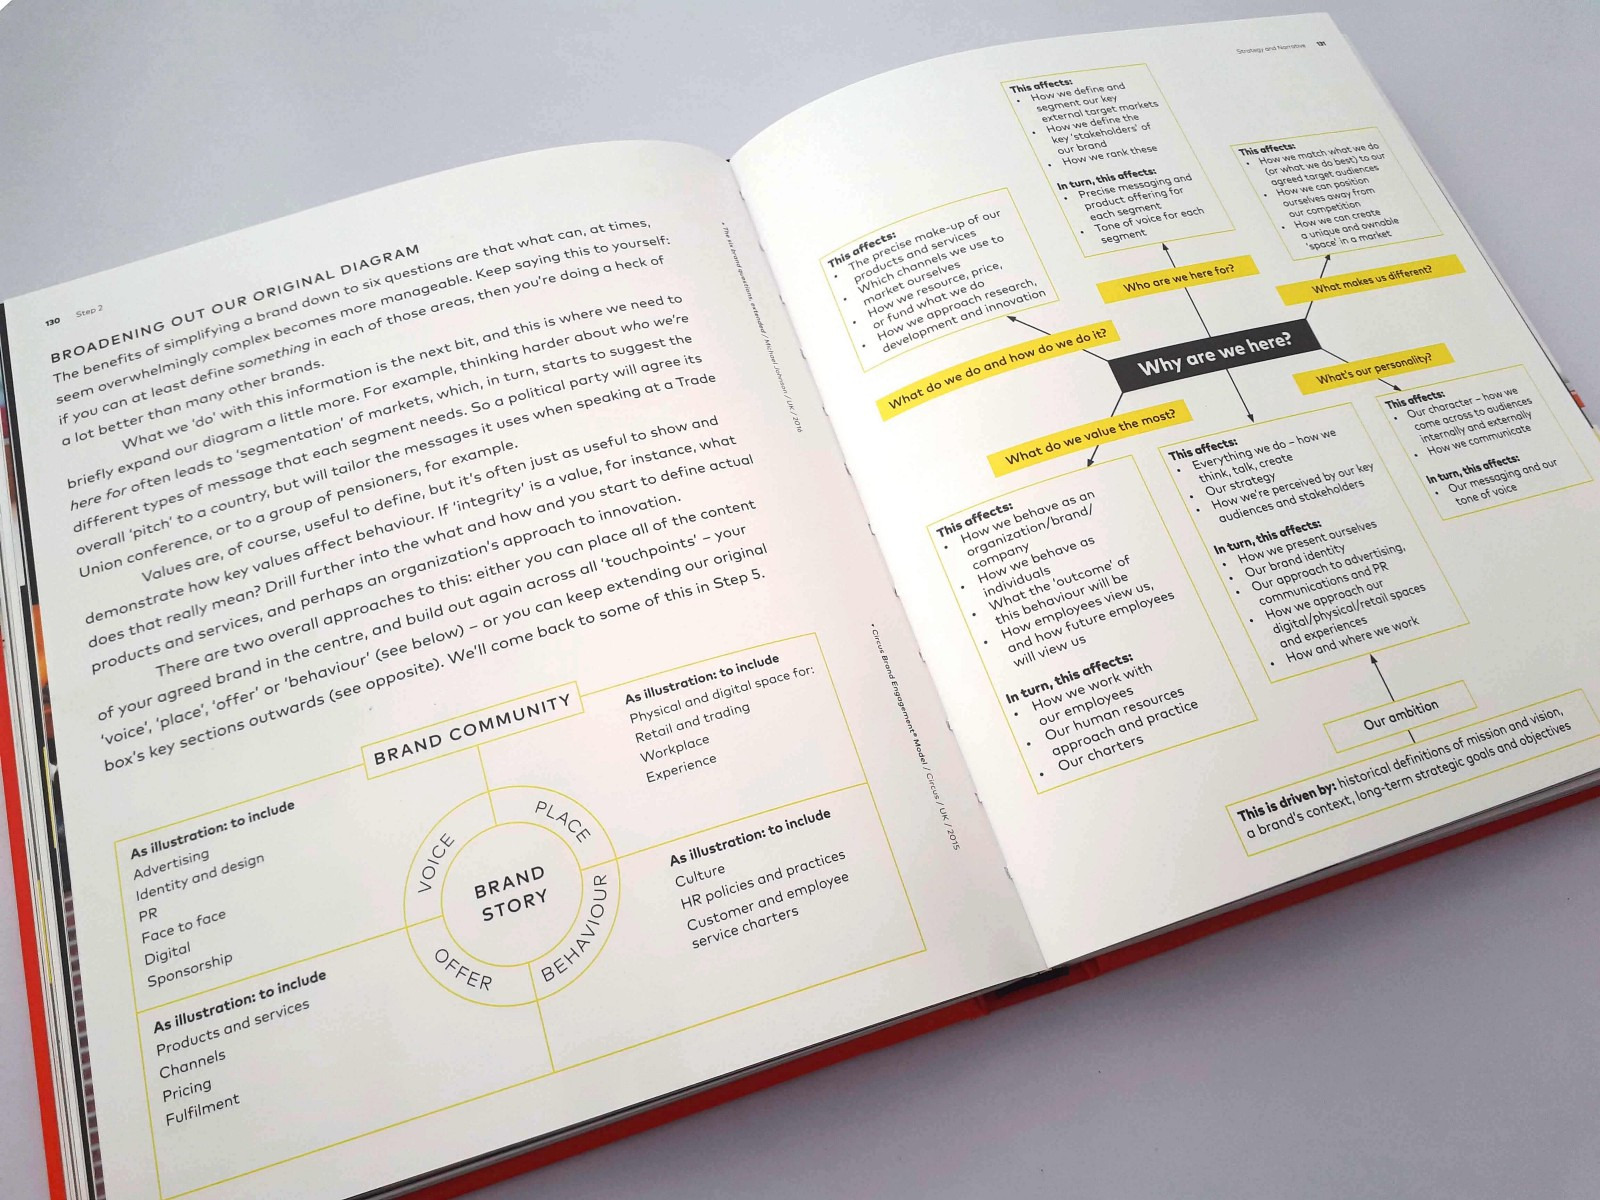 Branding in five and a half steps by Michael Johnson